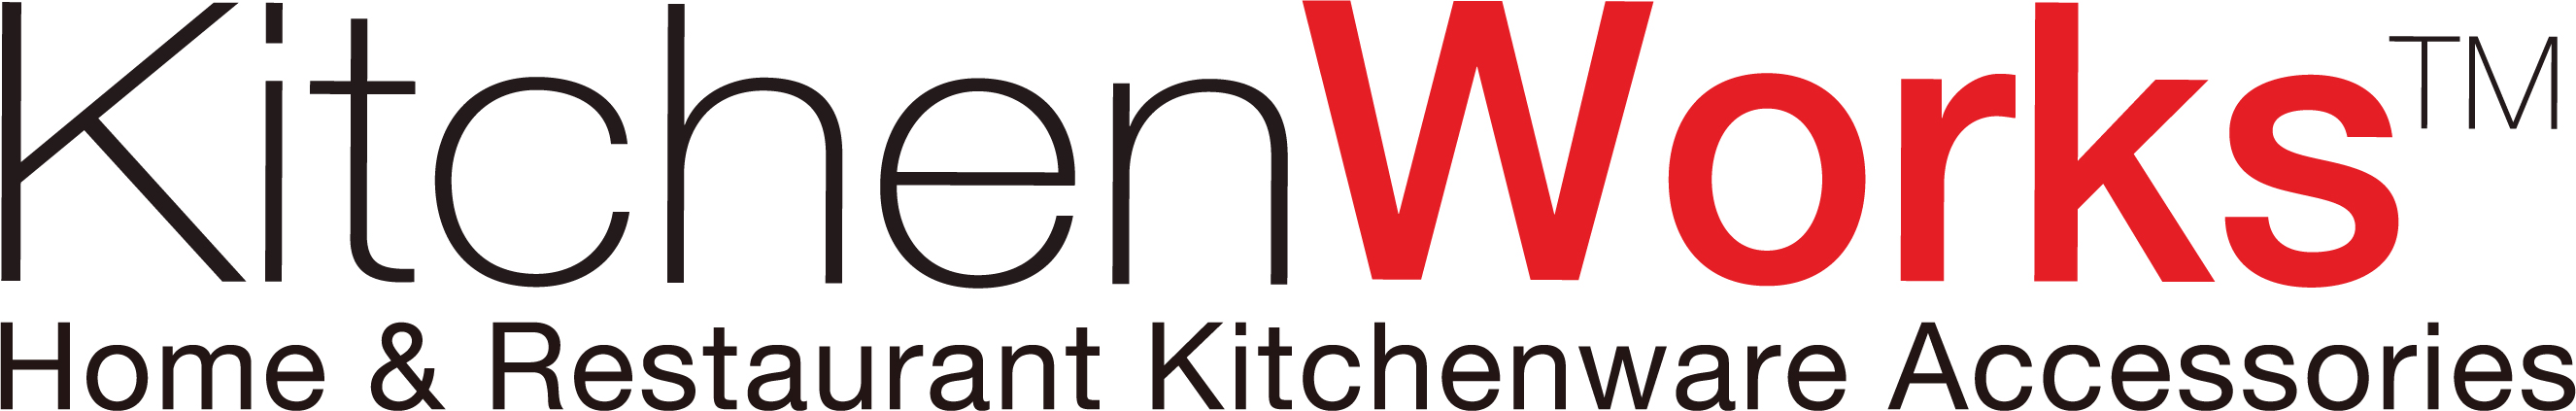 KITCHEN WORKS